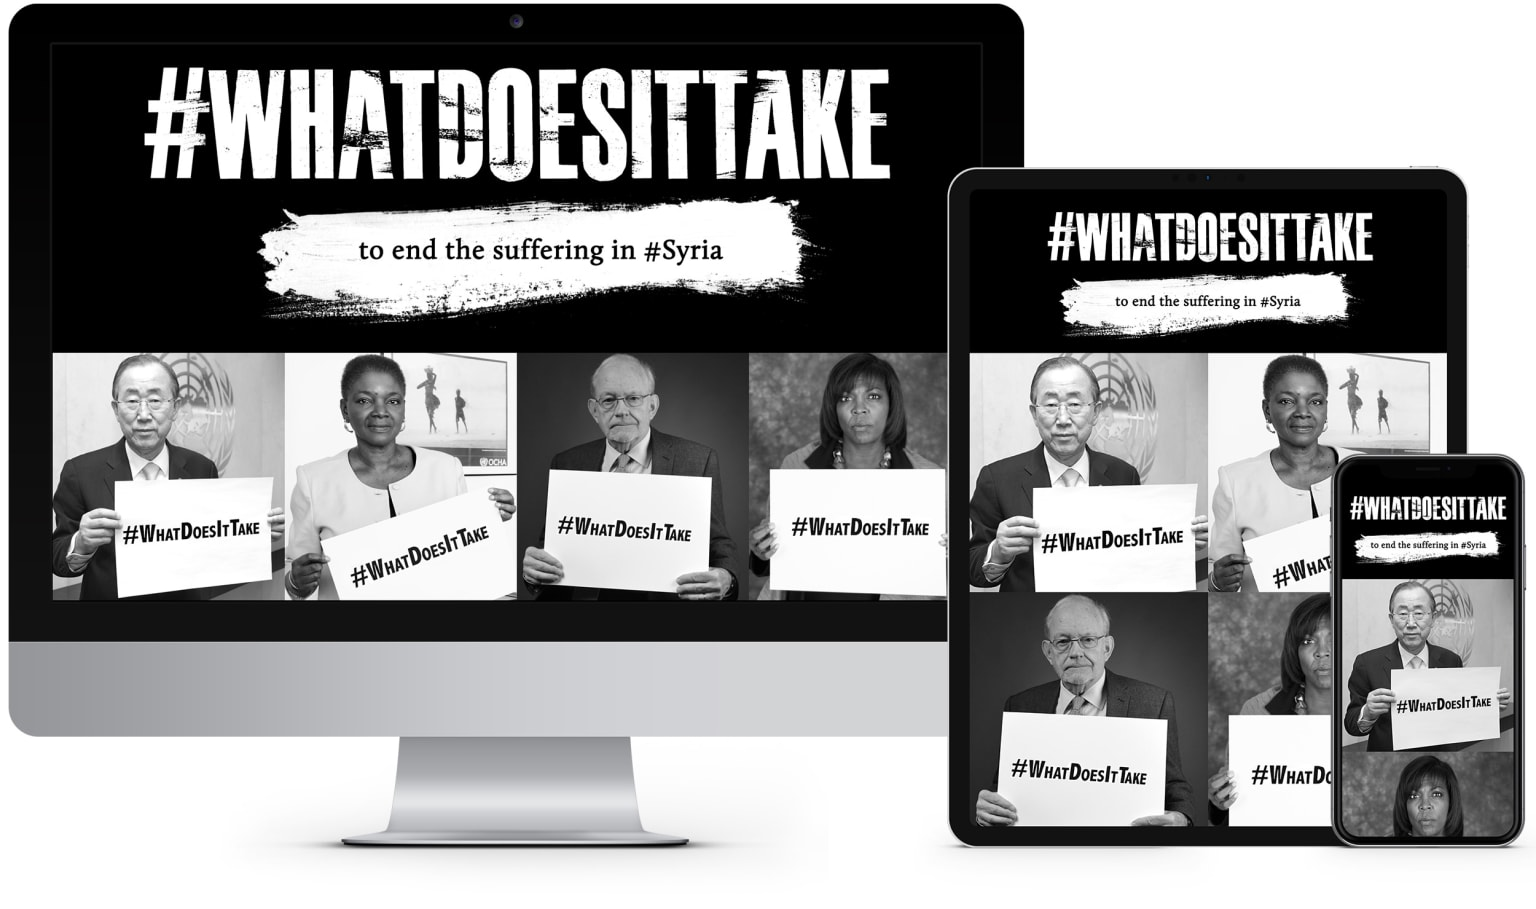 United Nations: Syria Campaign #WhatDoesitTake